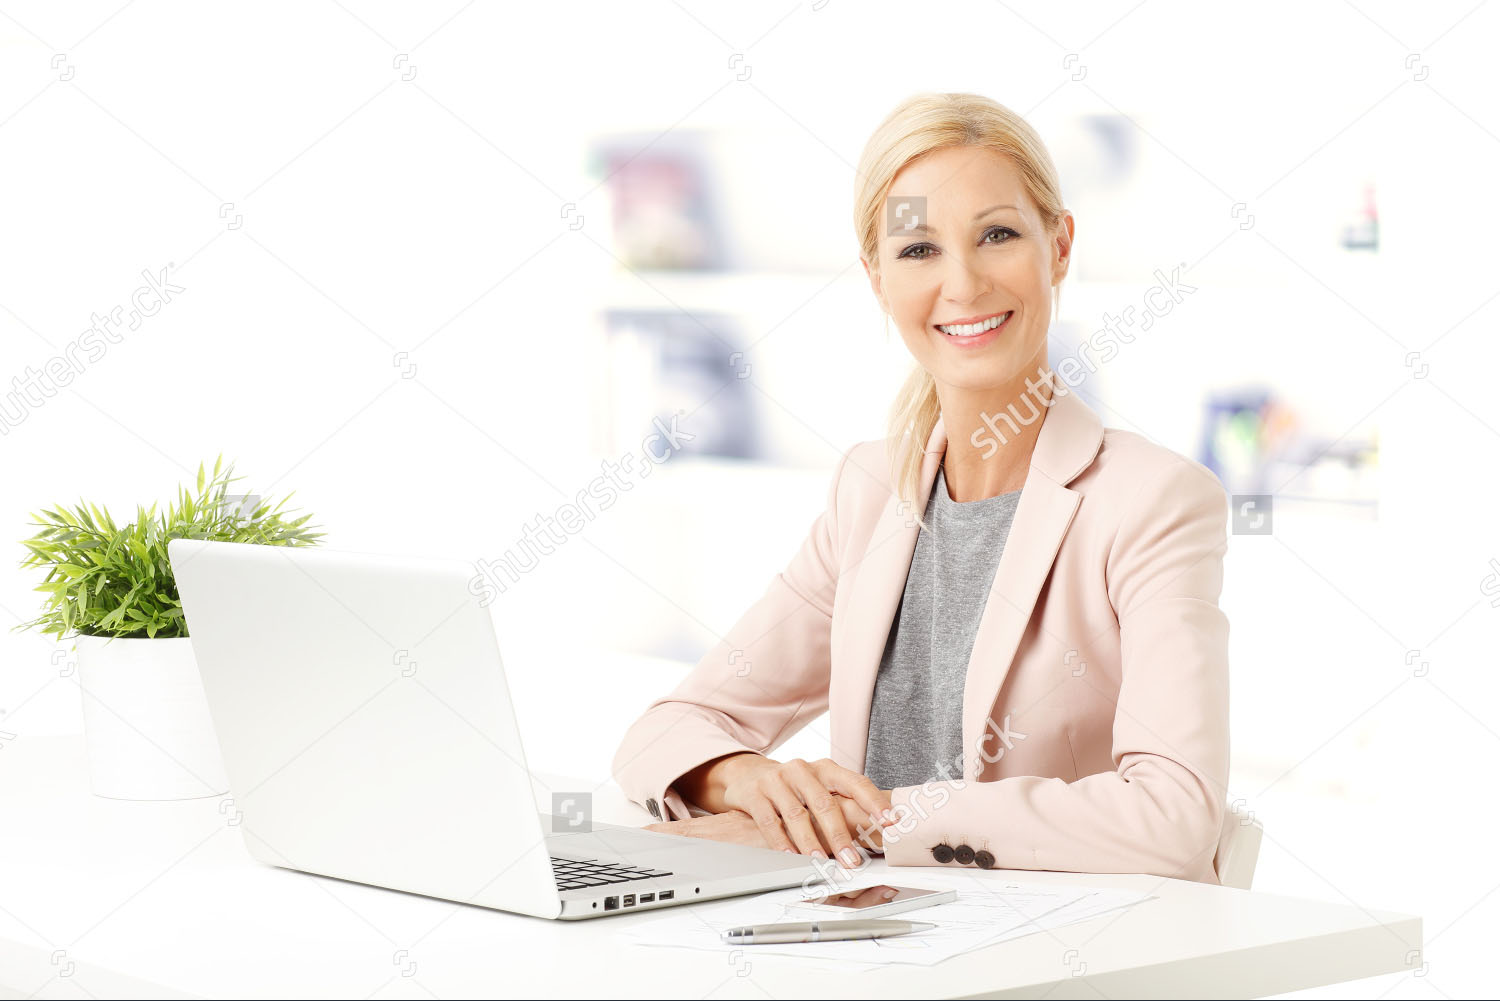 stock-photo-portrait-of-middle-age-woman-sitting-at-office-and-working-beautiful-businesswoman-sitting-at-desk-315067514